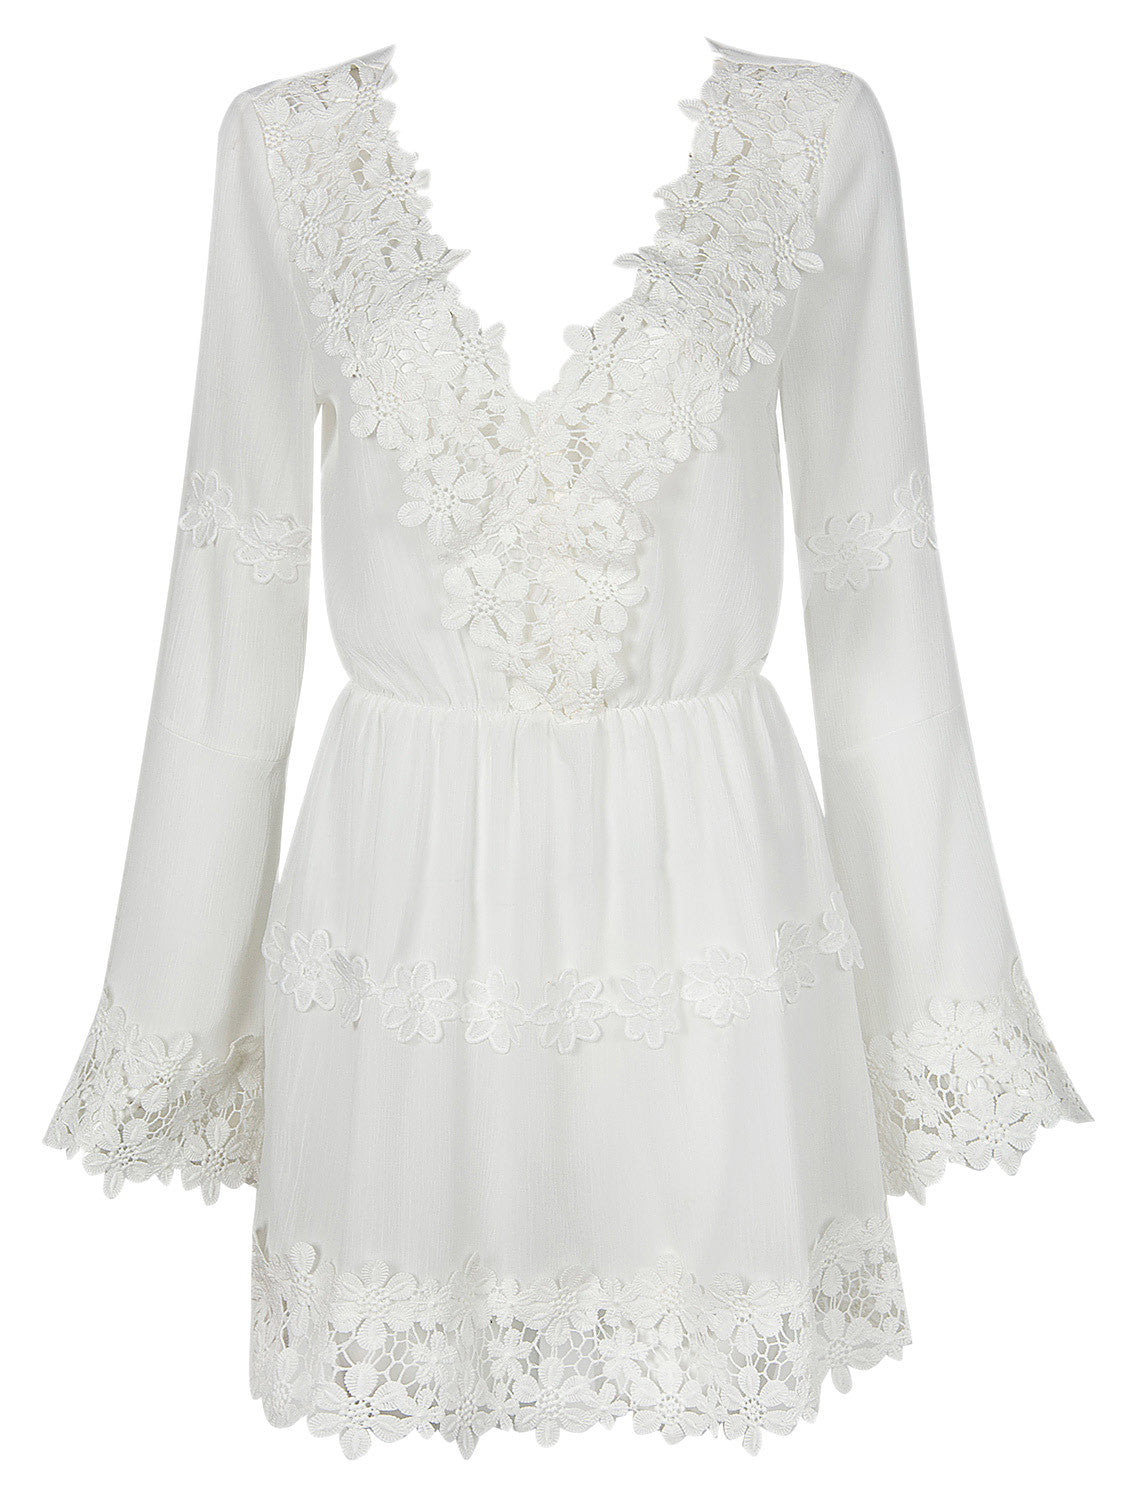 White V-neck Applique Trims Flare Sleeve Dress - MYNYstyle - 4